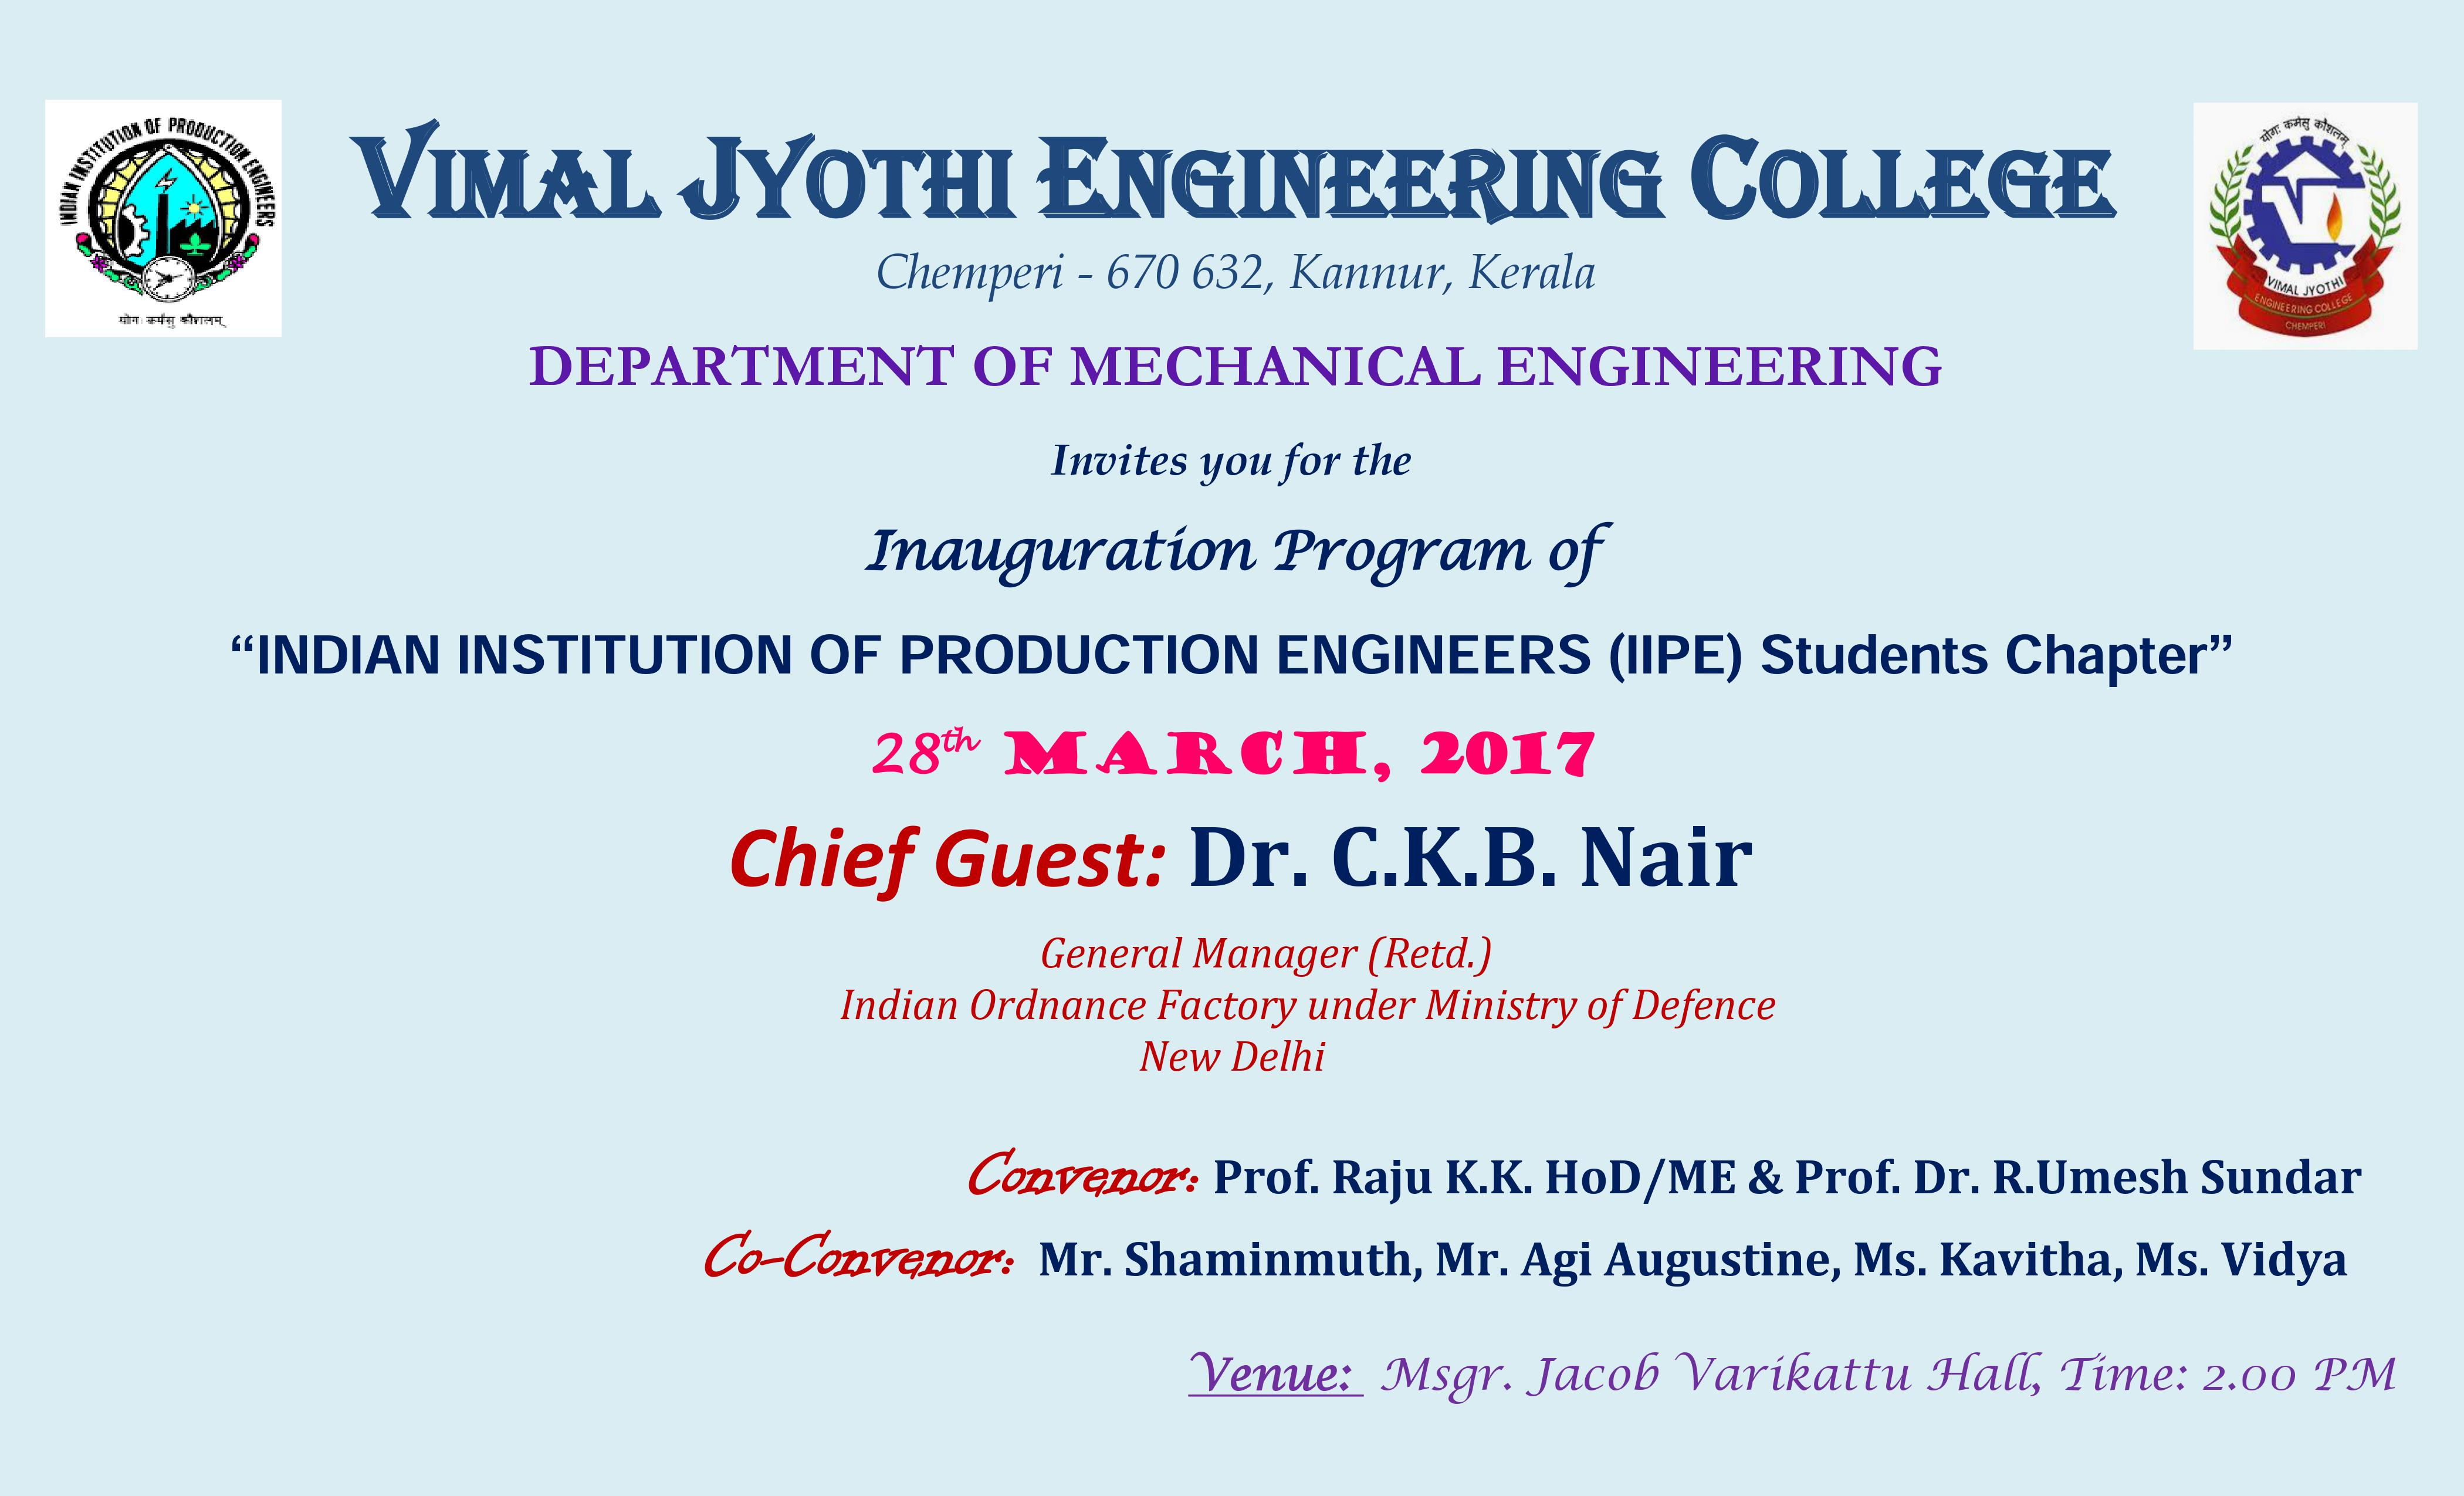 Indian Institution of Production Engineers (IIPE) Students Chapter